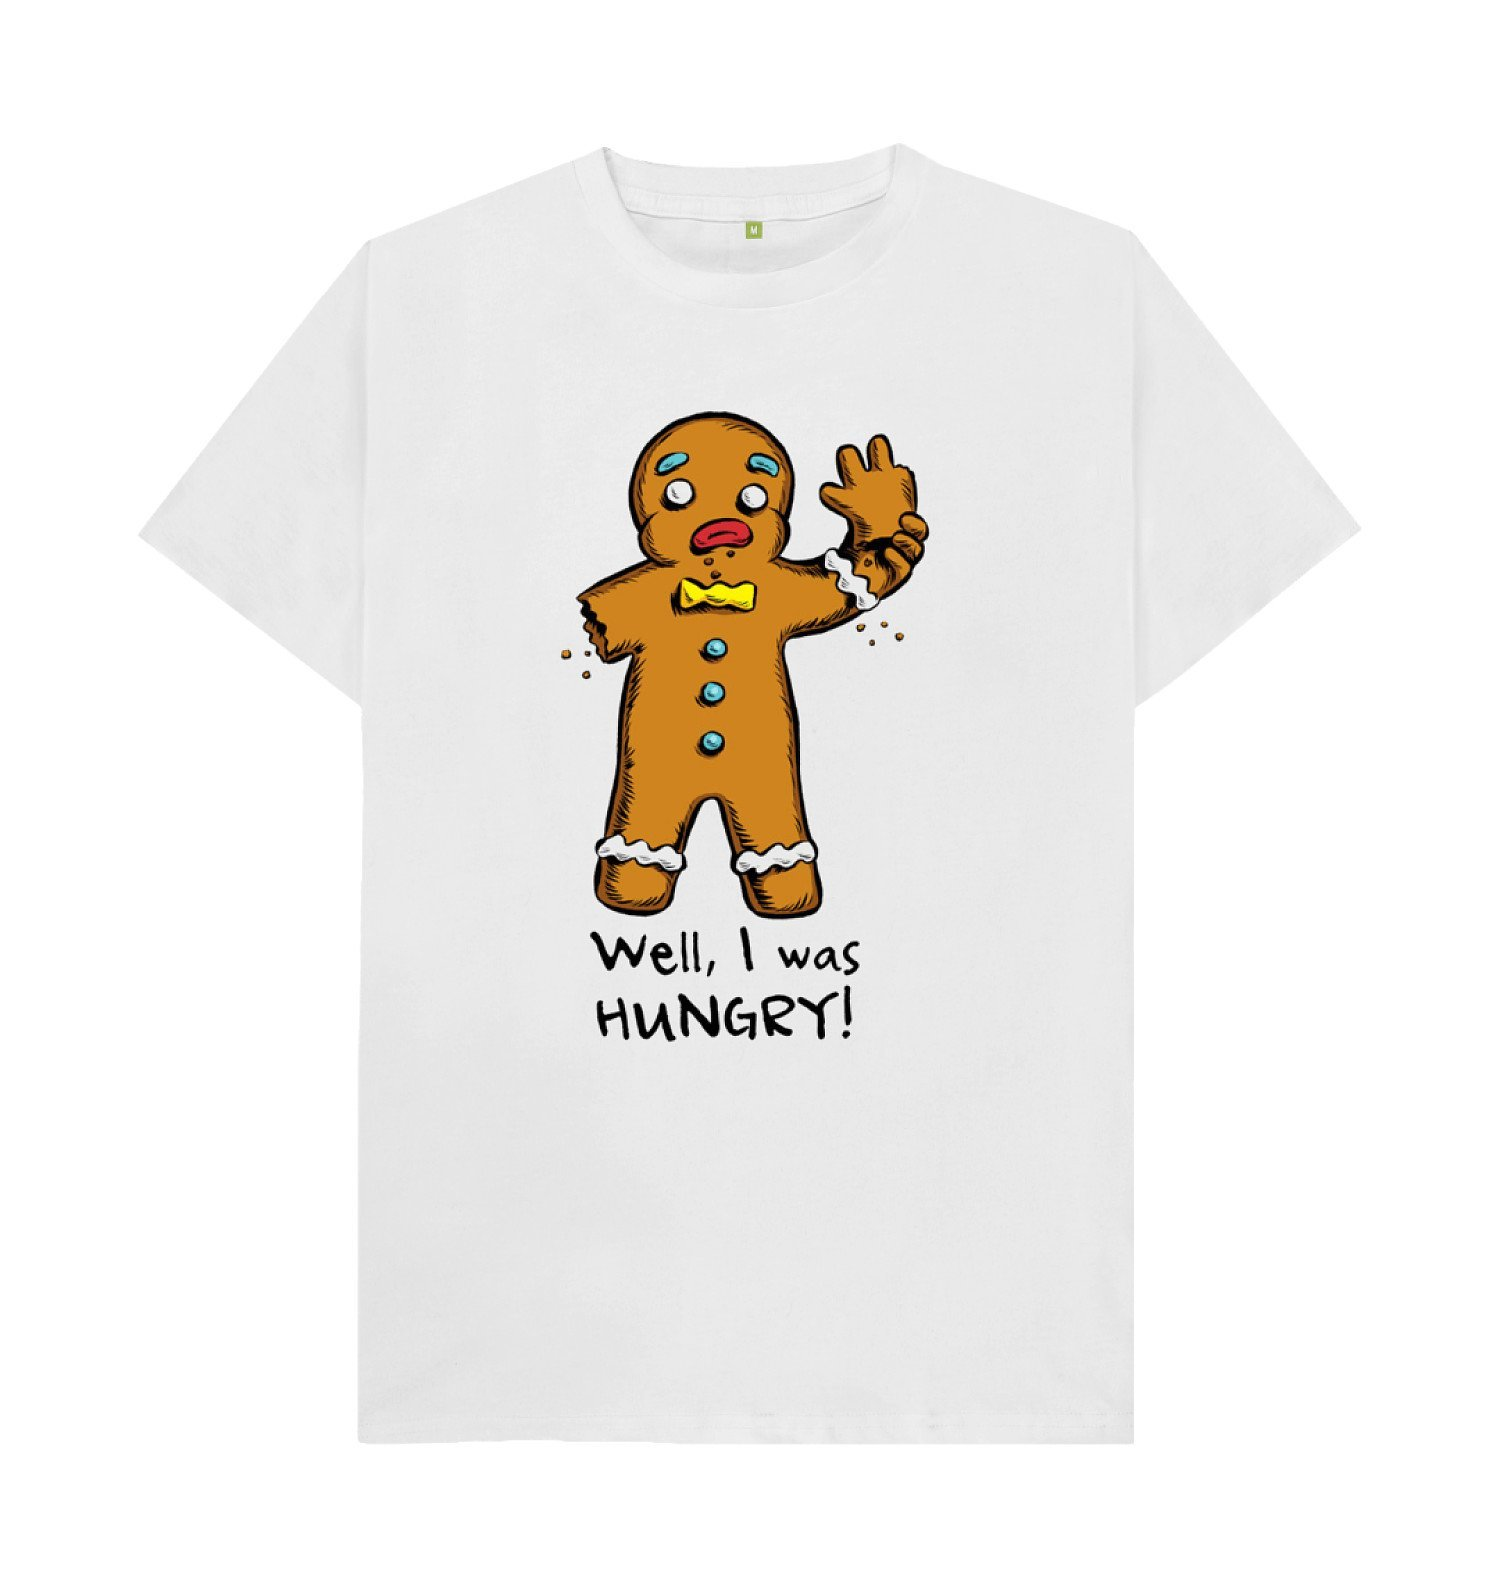 EXCITING NEW T-SHIRTS FOR CHILDREN